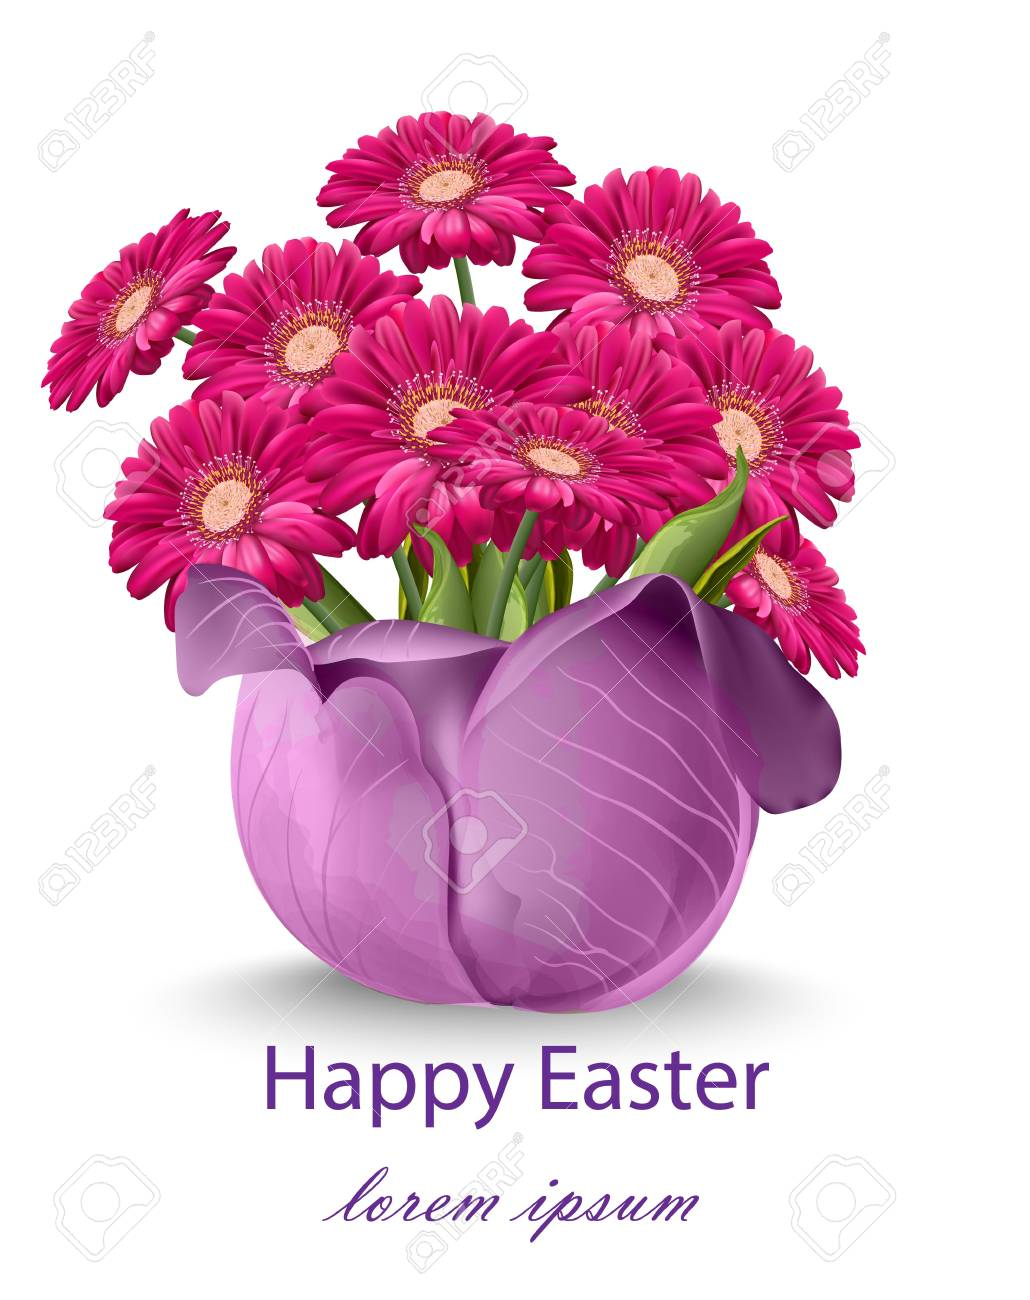 Happy Easter Daisy Flowers Bouquet Card Vector Spring Floral